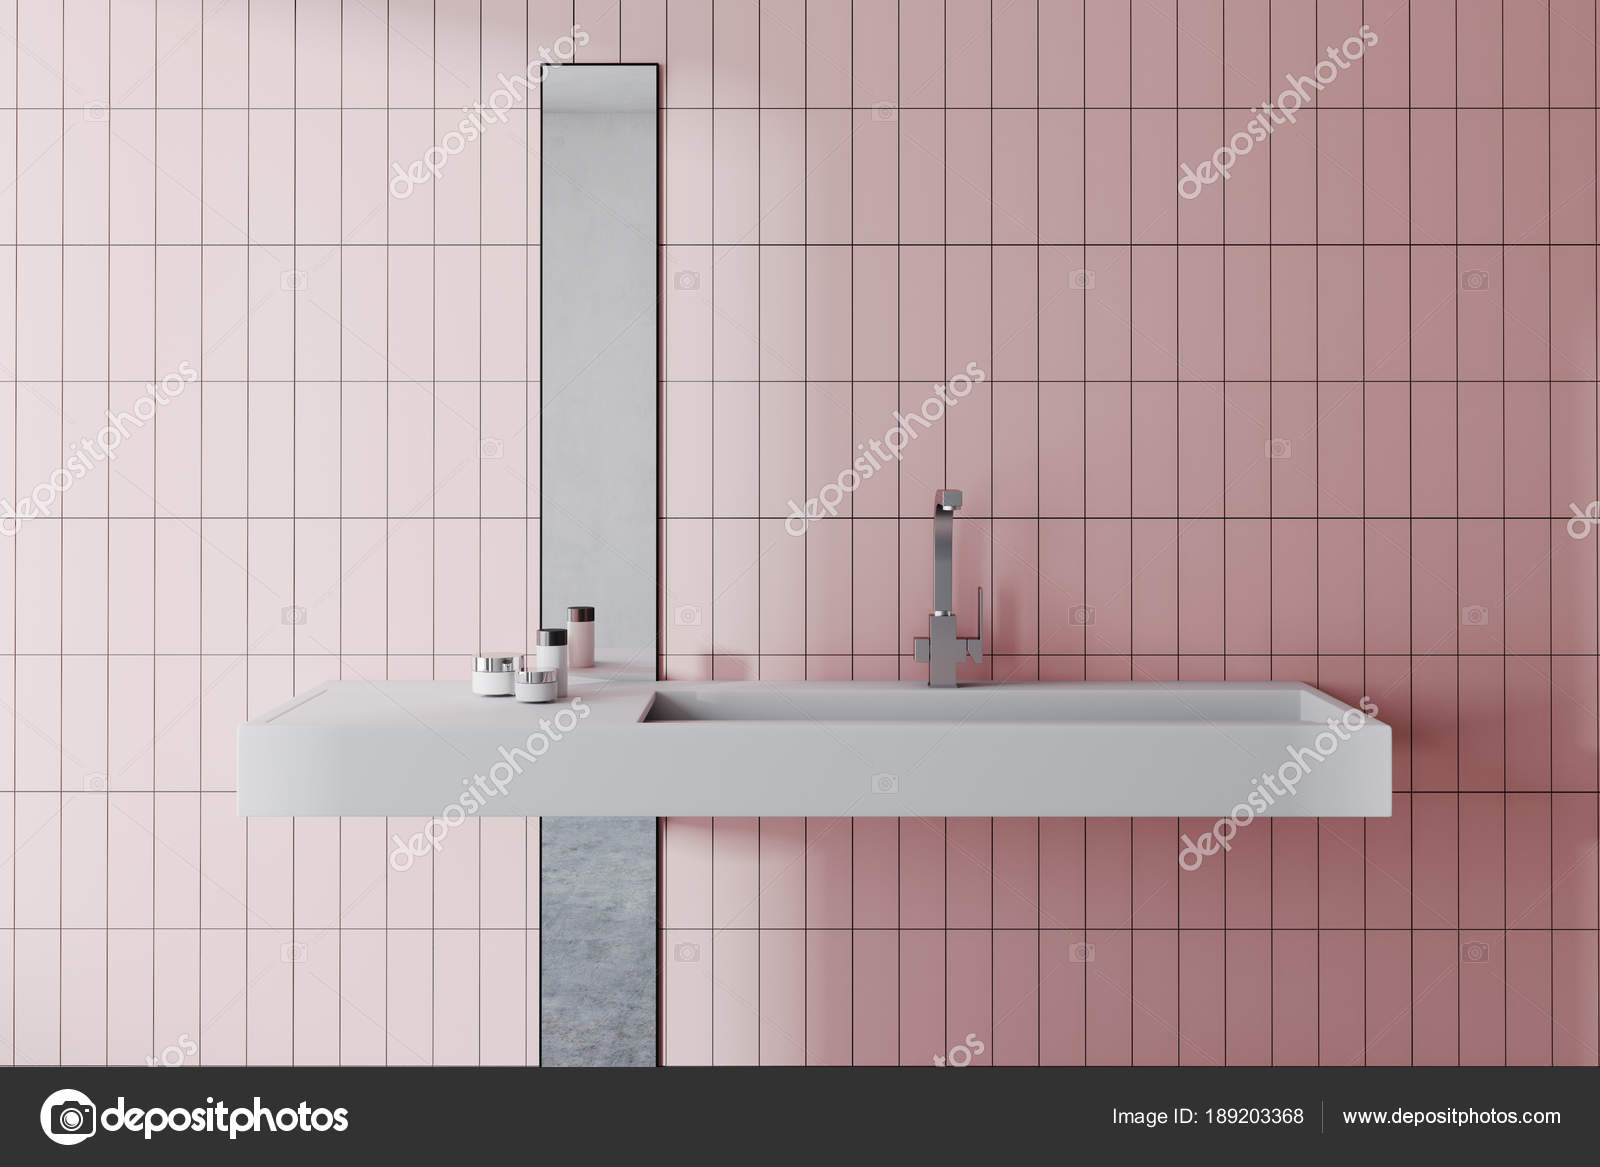 Affondare in un interno di bagno rosa u foto stock